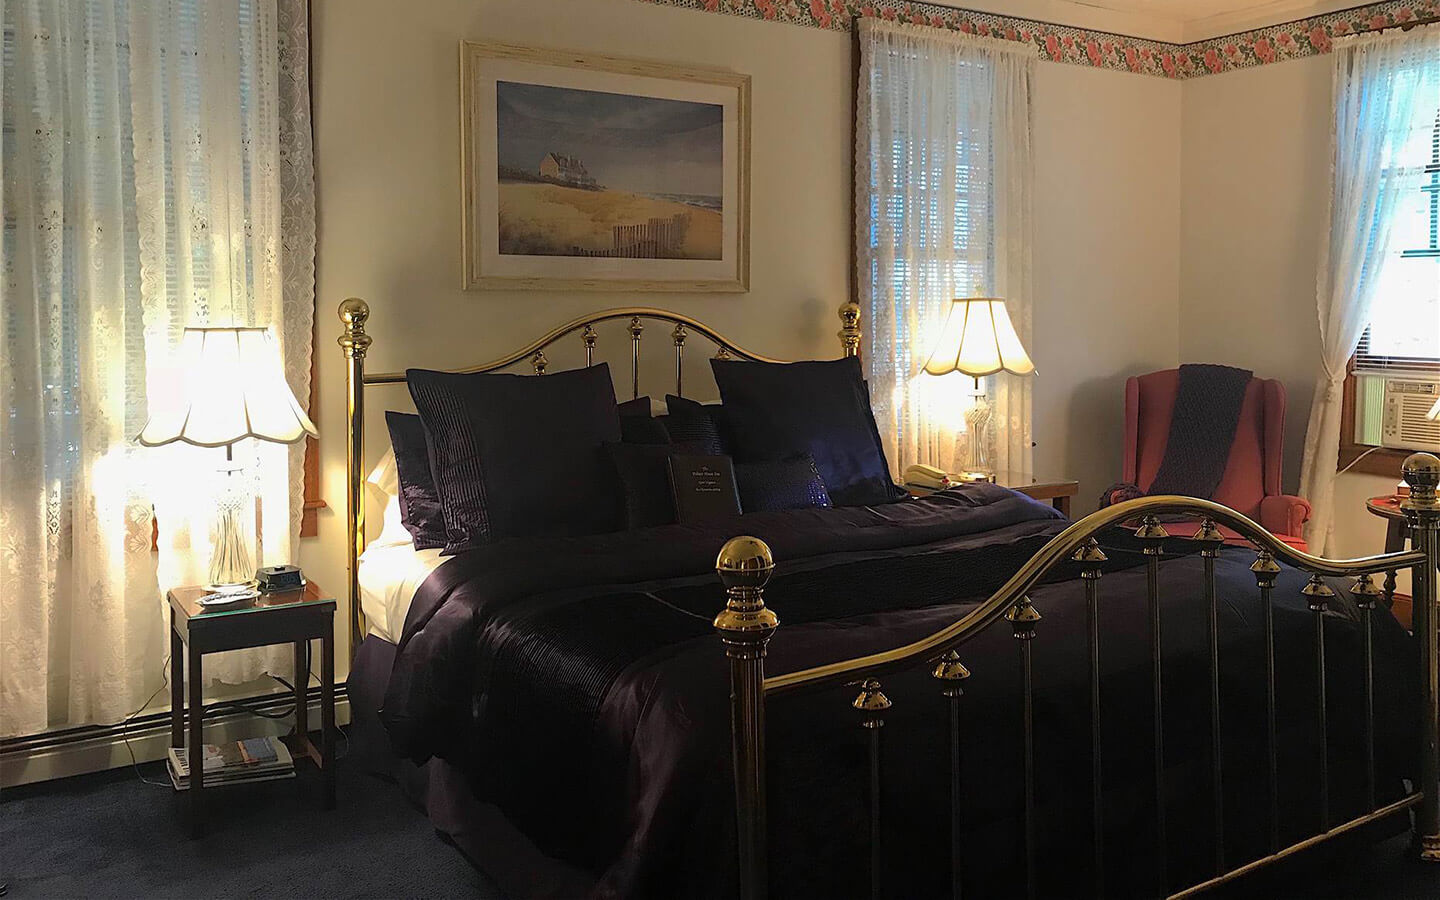 Room A - Harriet Beecher Stowe Room bed at our Falmouth, MA B&B